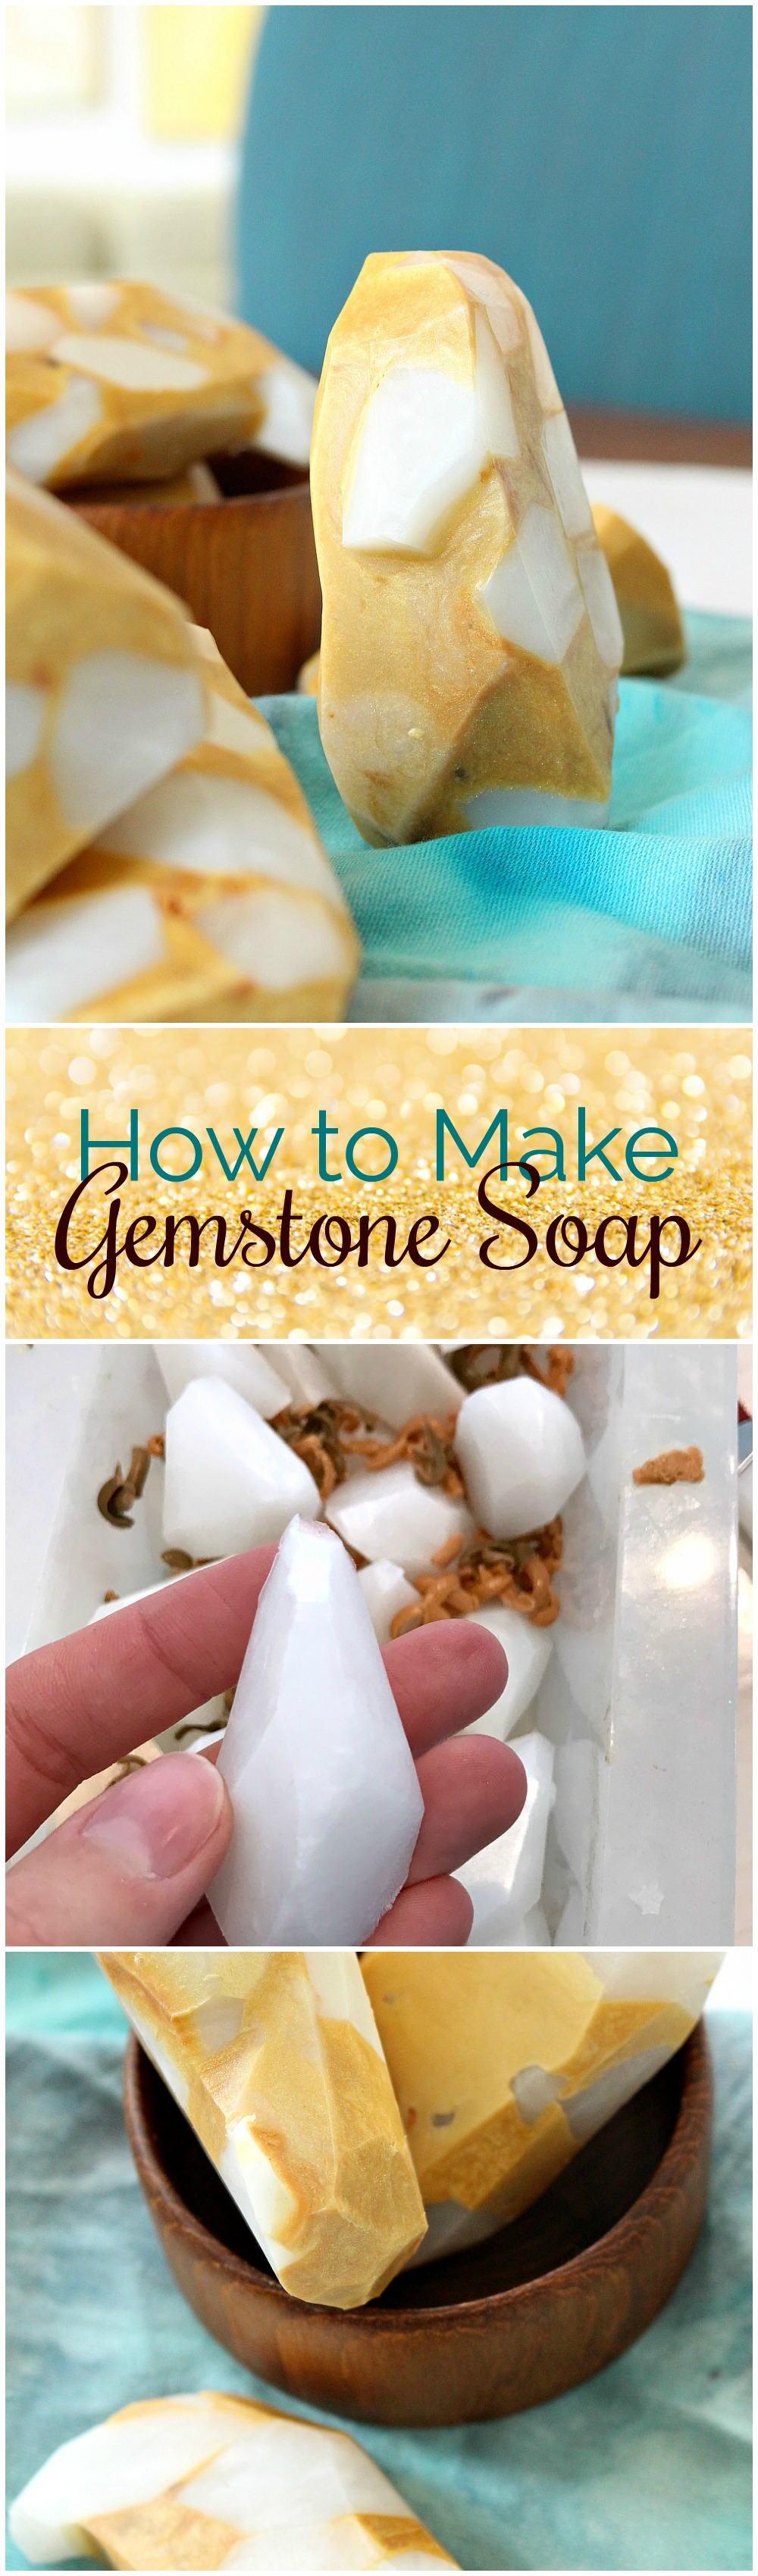 DIY gemstone soap tutorial